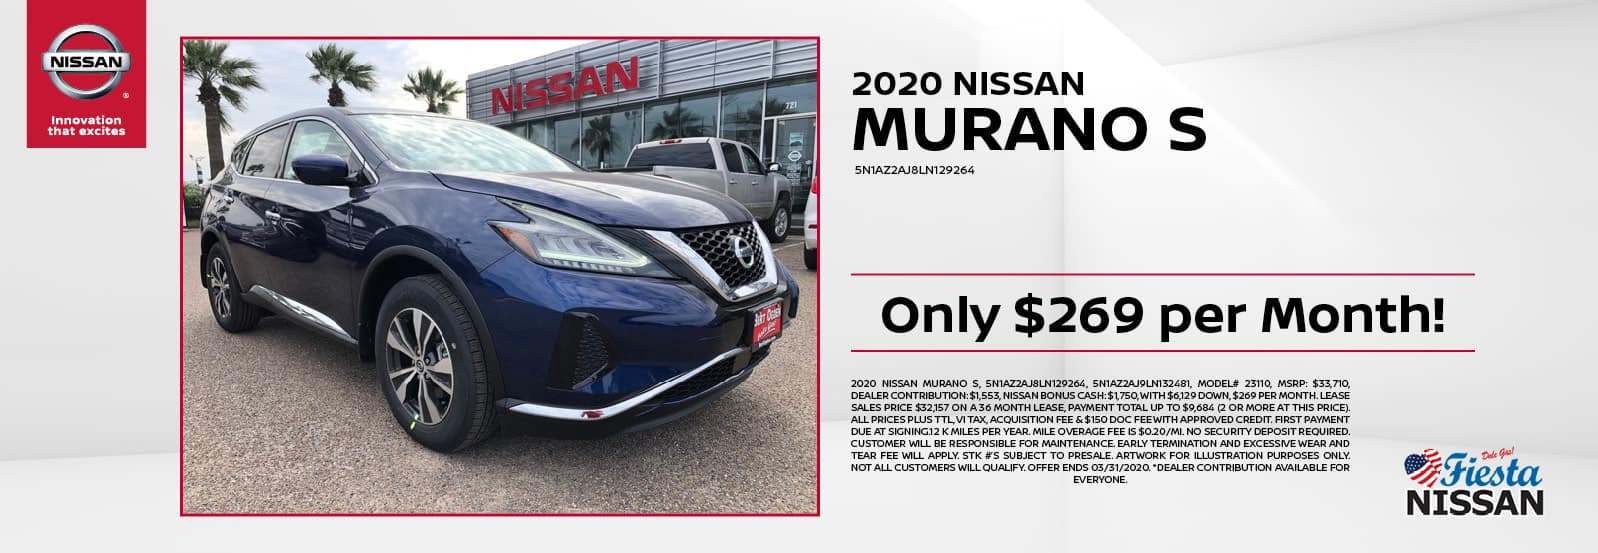 2020 Nissan Murano S at Fiesta Nissan in Edinburg, TX